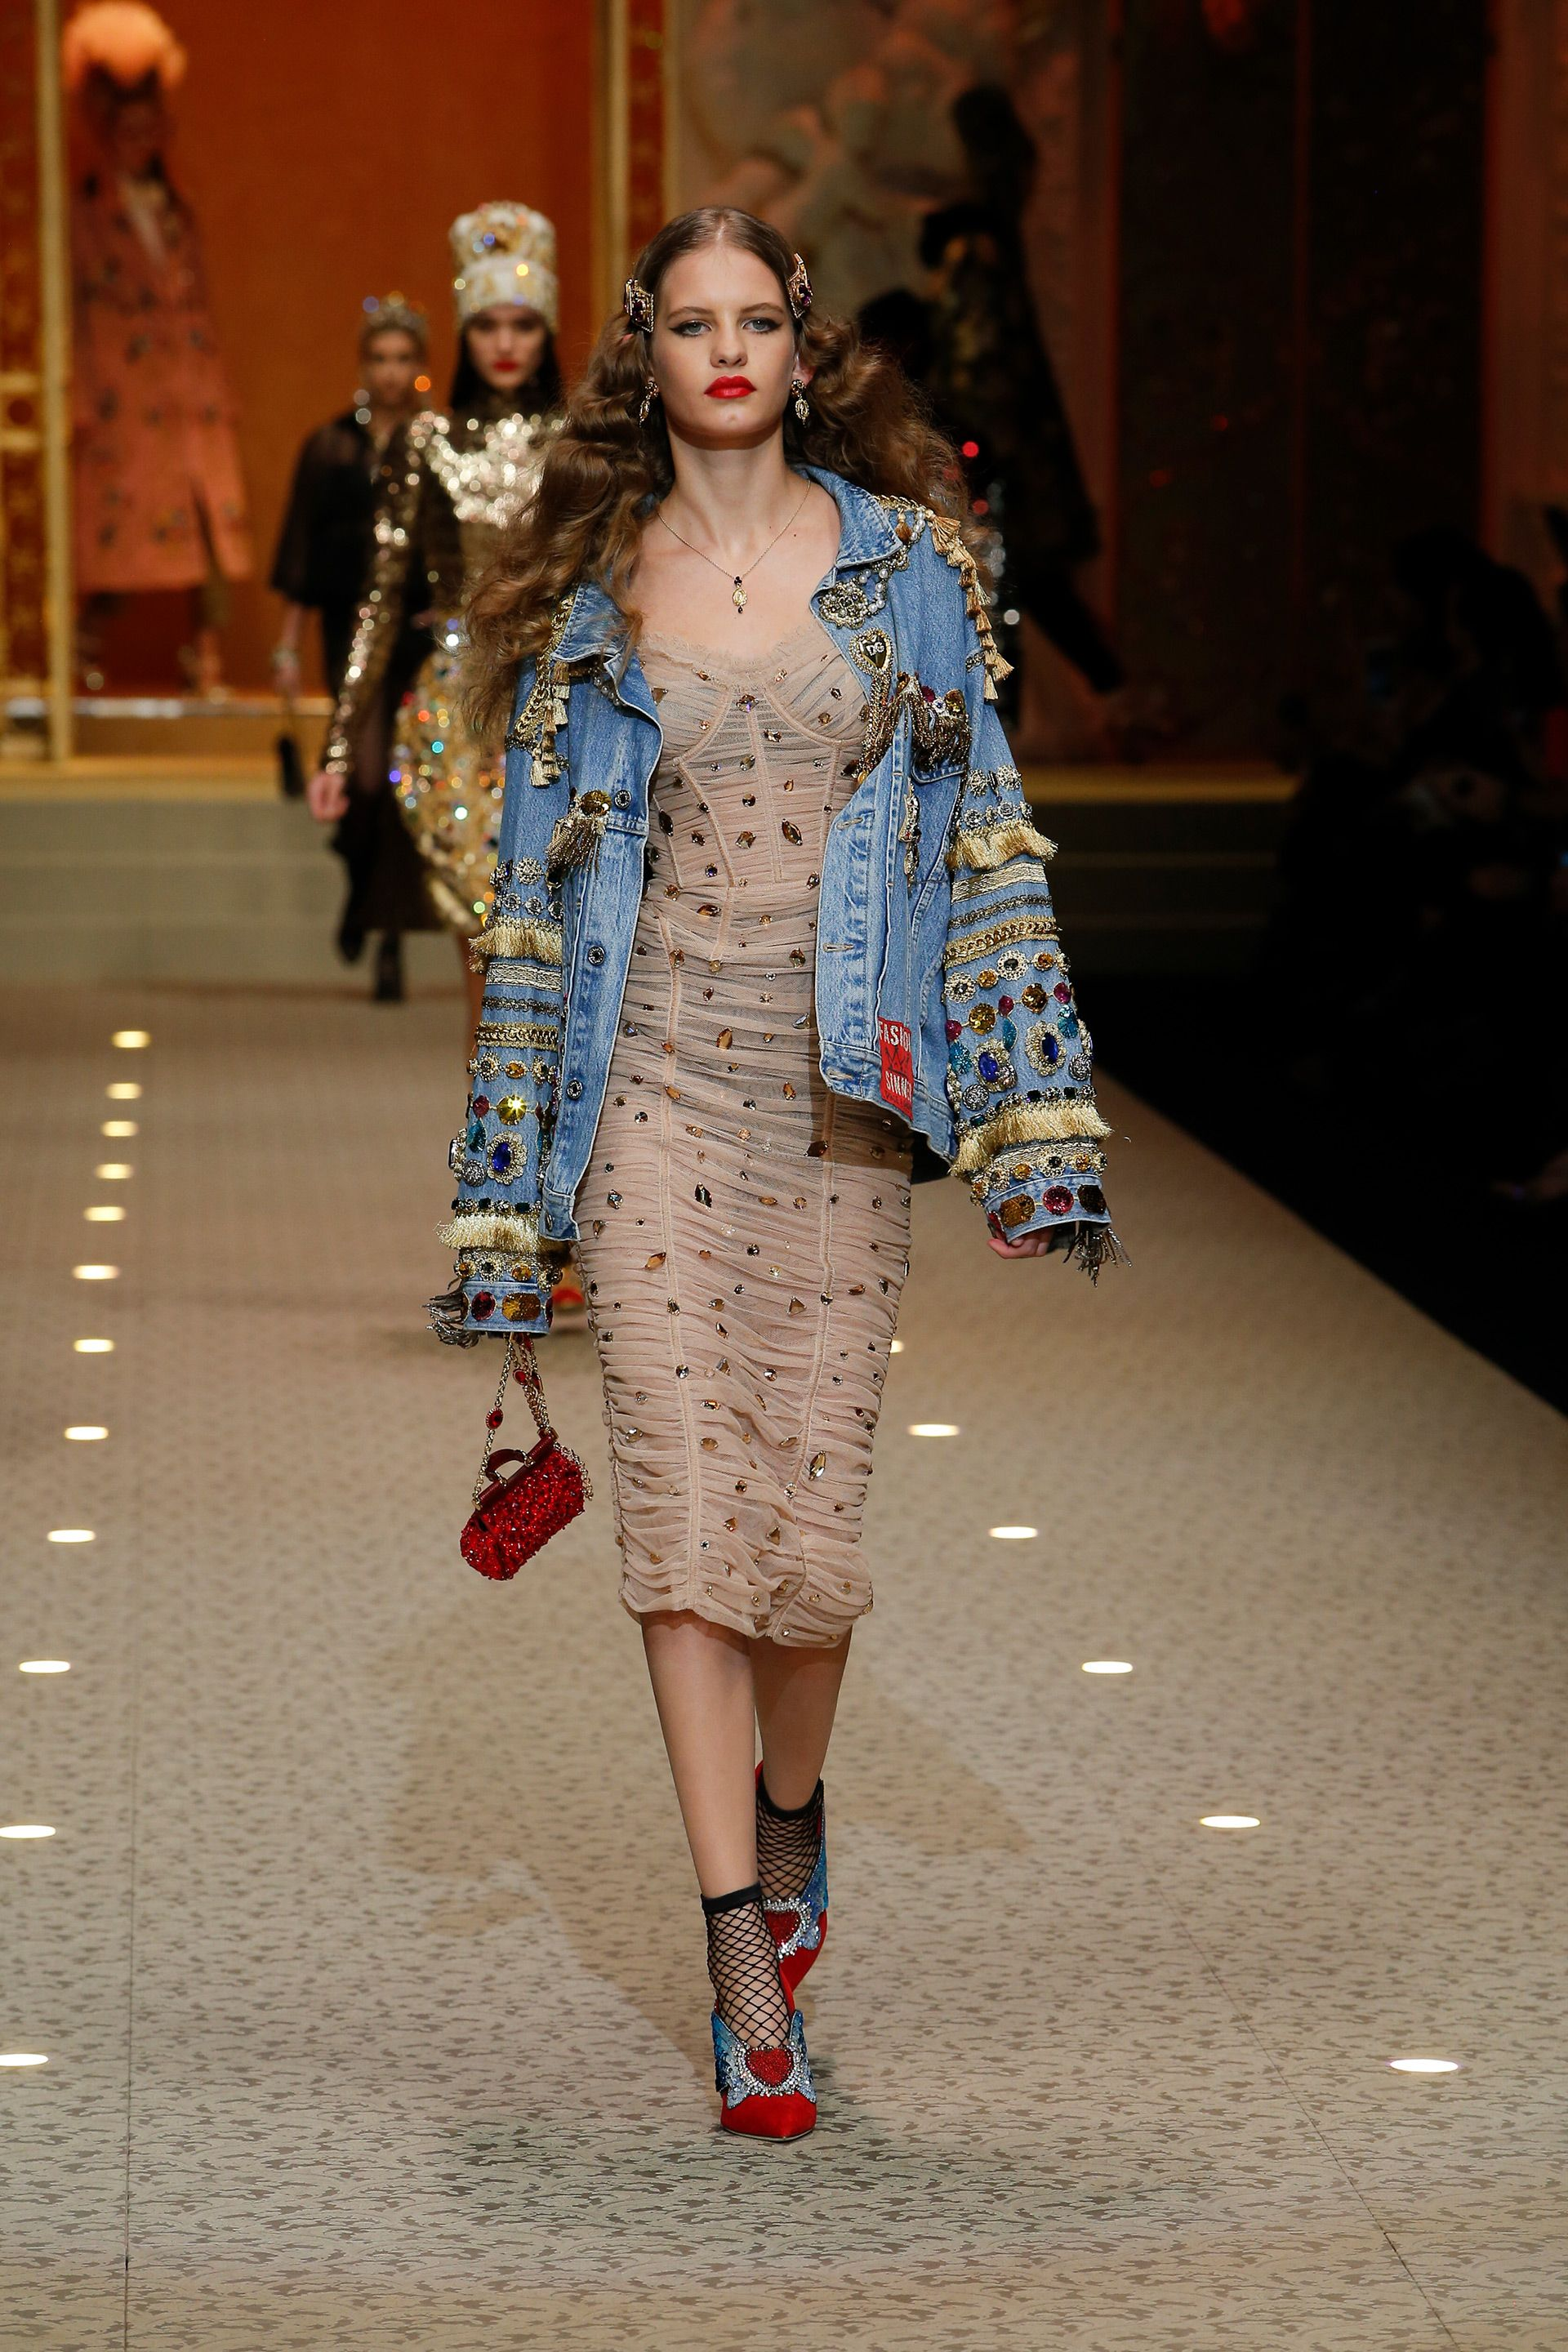 626d723b Discover Videos and Pictures of Dolce & Gabbana Fall Winter 2018-19  Womenswear Fashion Show on Dolcegabbana.com.